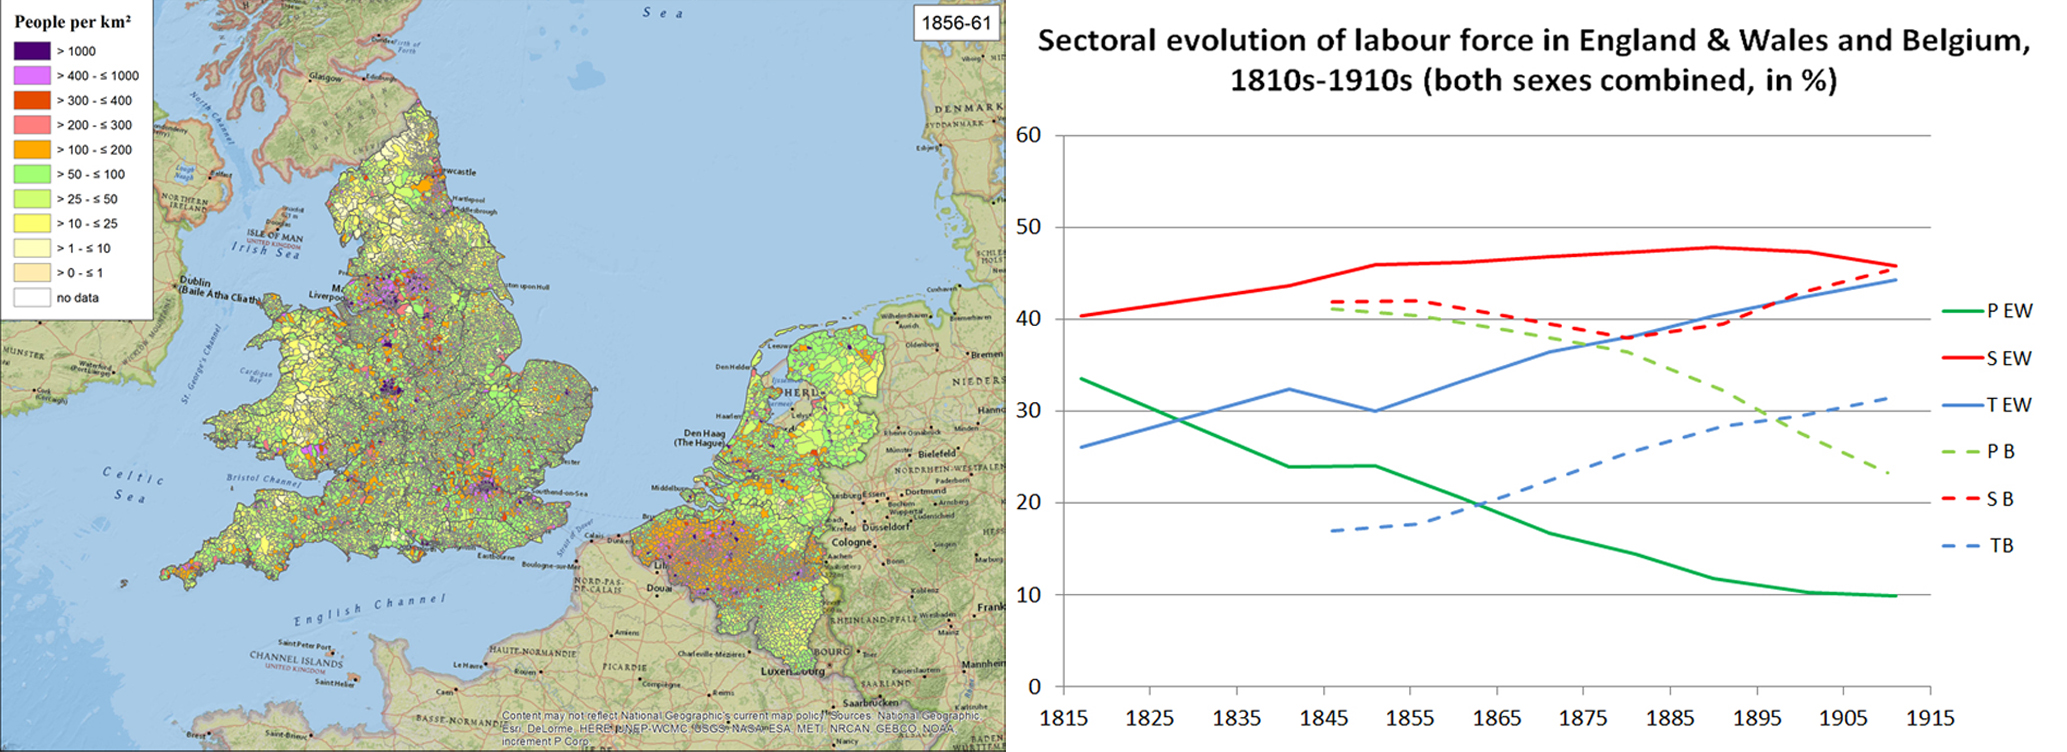 Population density and sectoral evolution of labour force in England, Wales, Belgium and the Netherlands